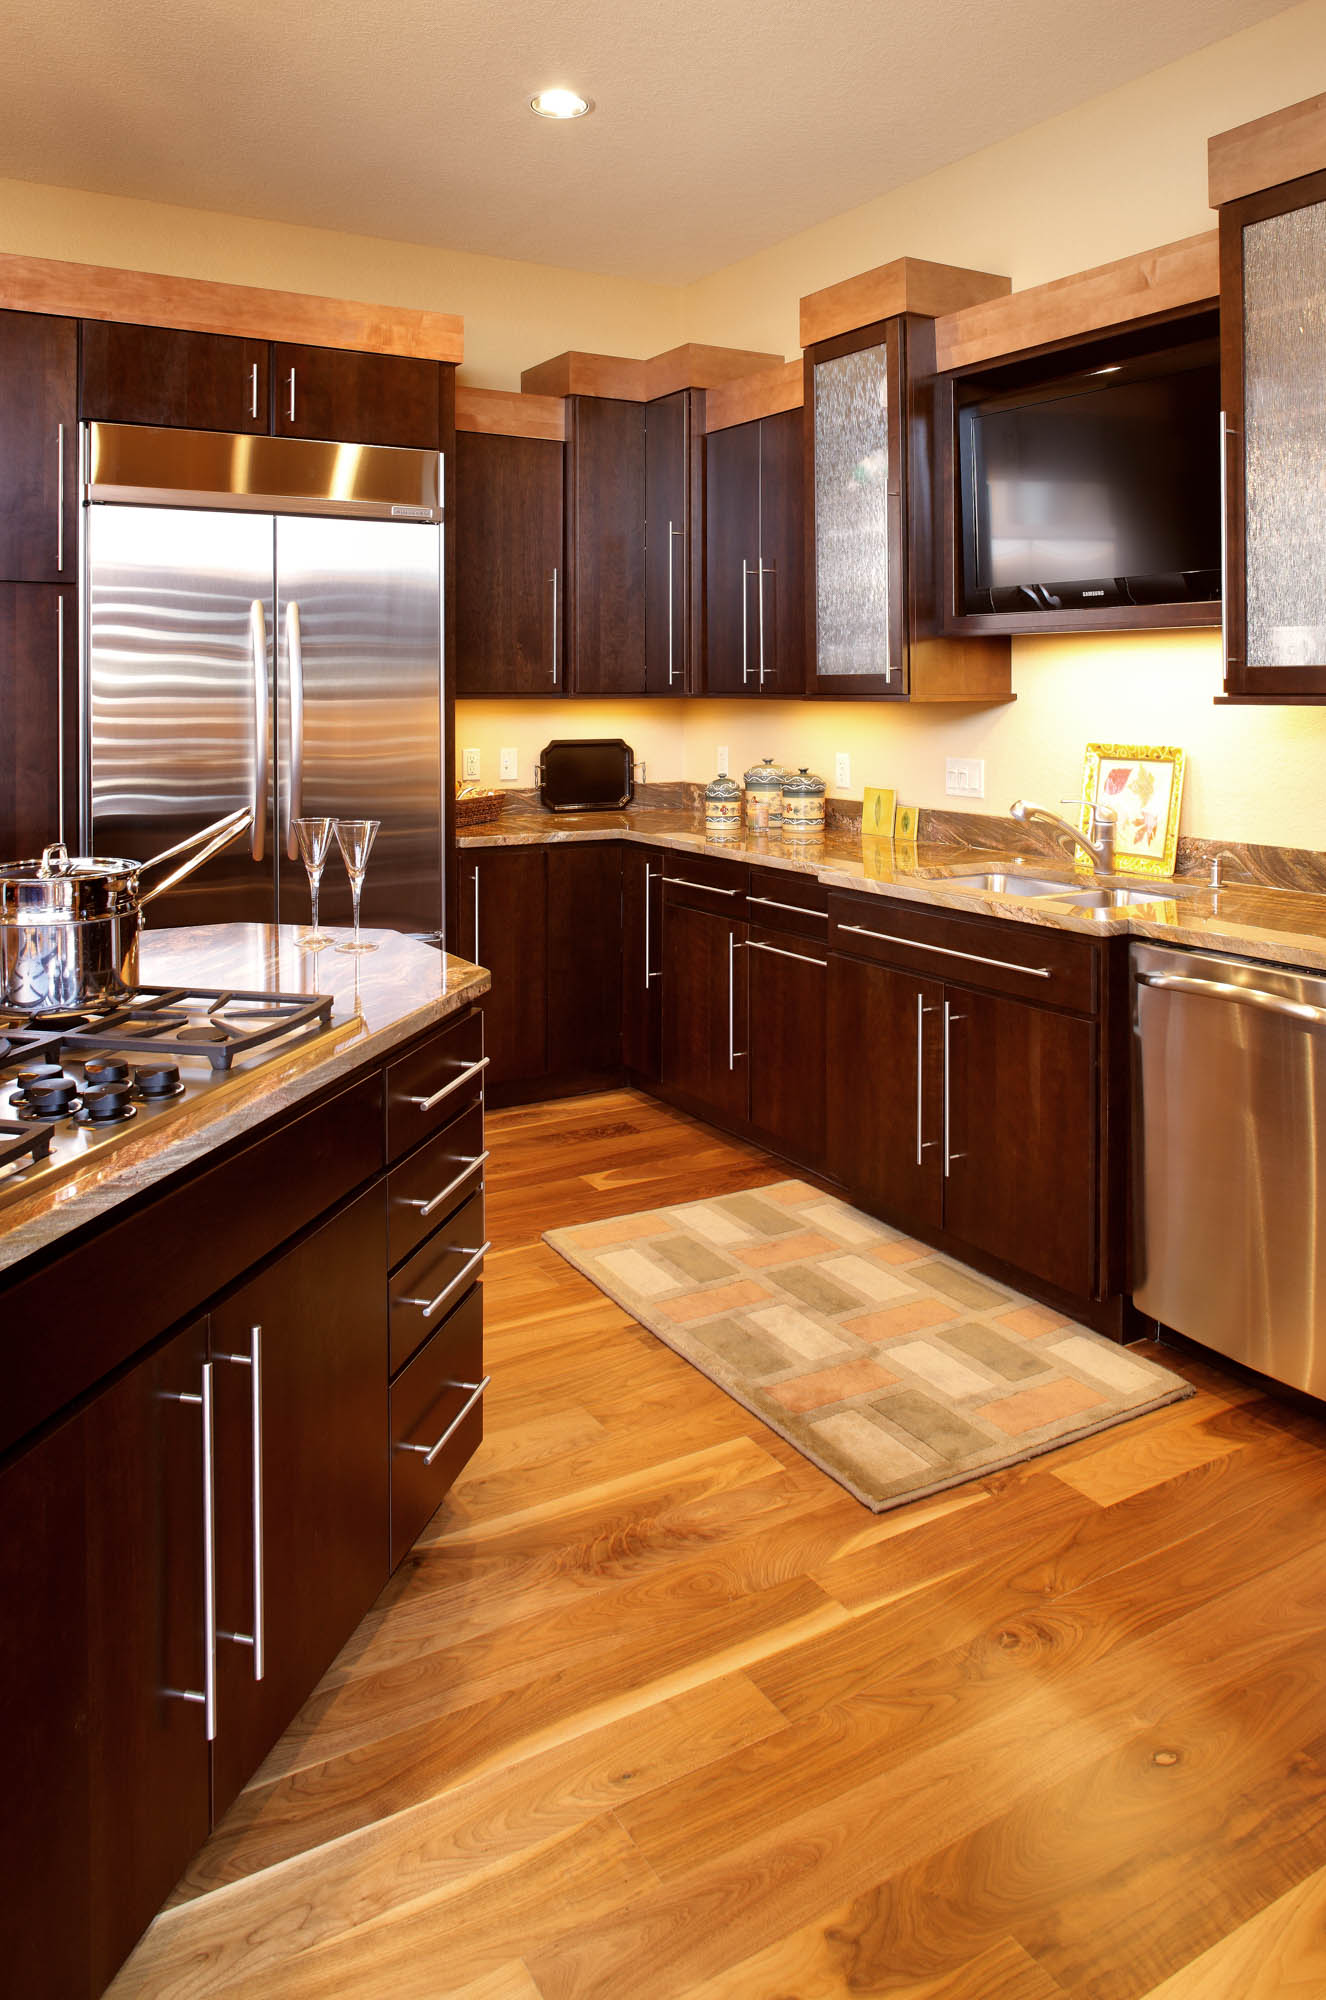 Stained kitchen cabinets in Coffee and Hazelnut by Showplace Cabinetry - view 2